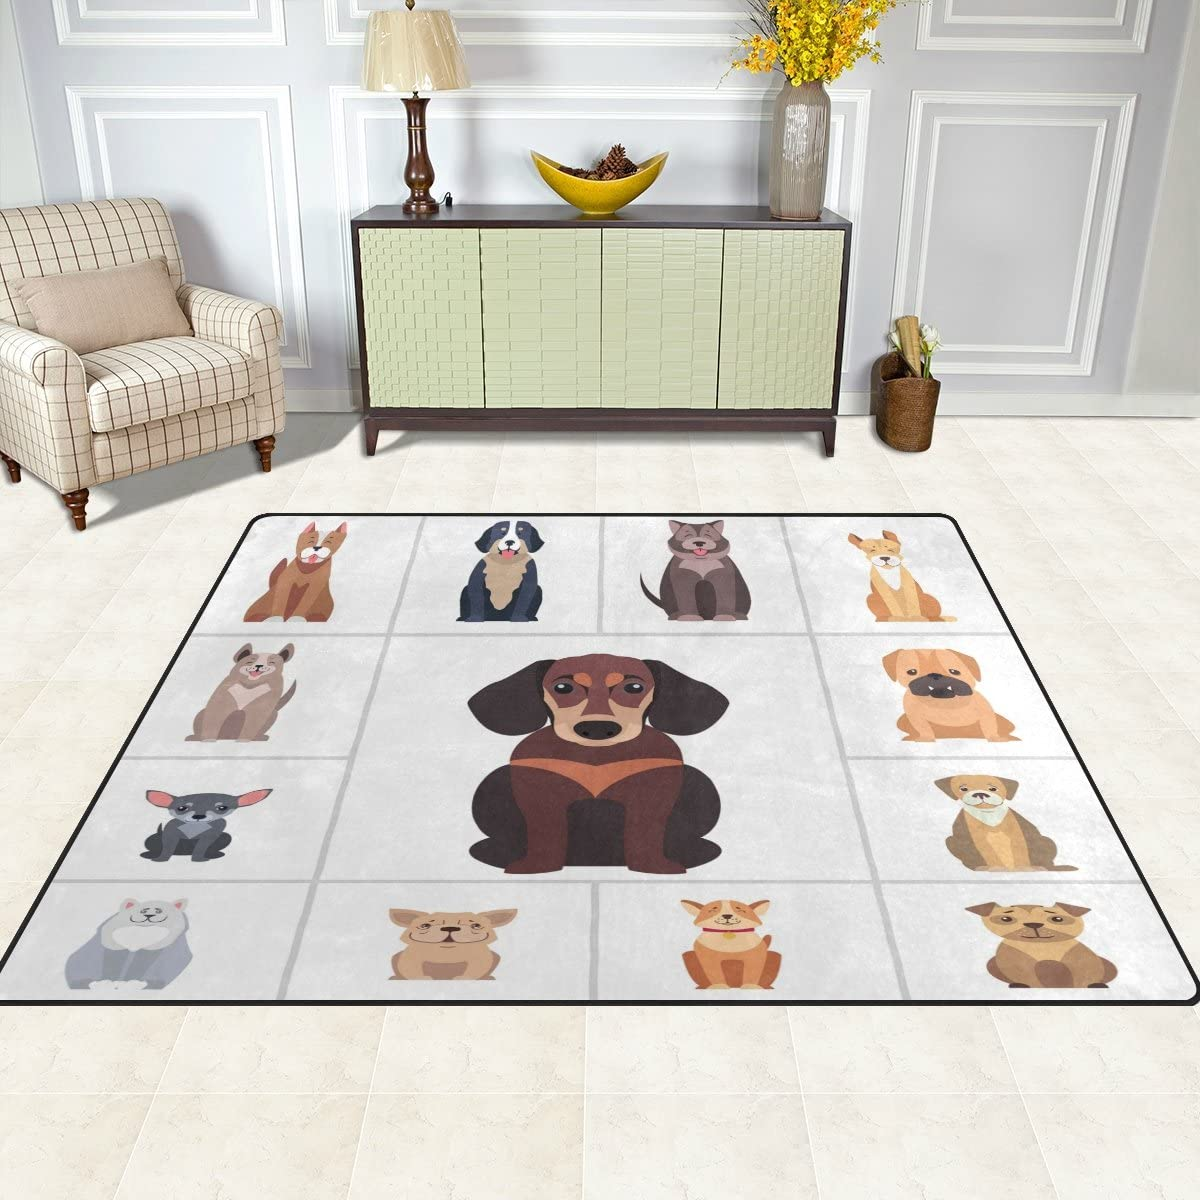 ALAZA Cartoon Dachshund Puppy Dog Area Rug Rugs for Living Room Bedroom 7 x 5